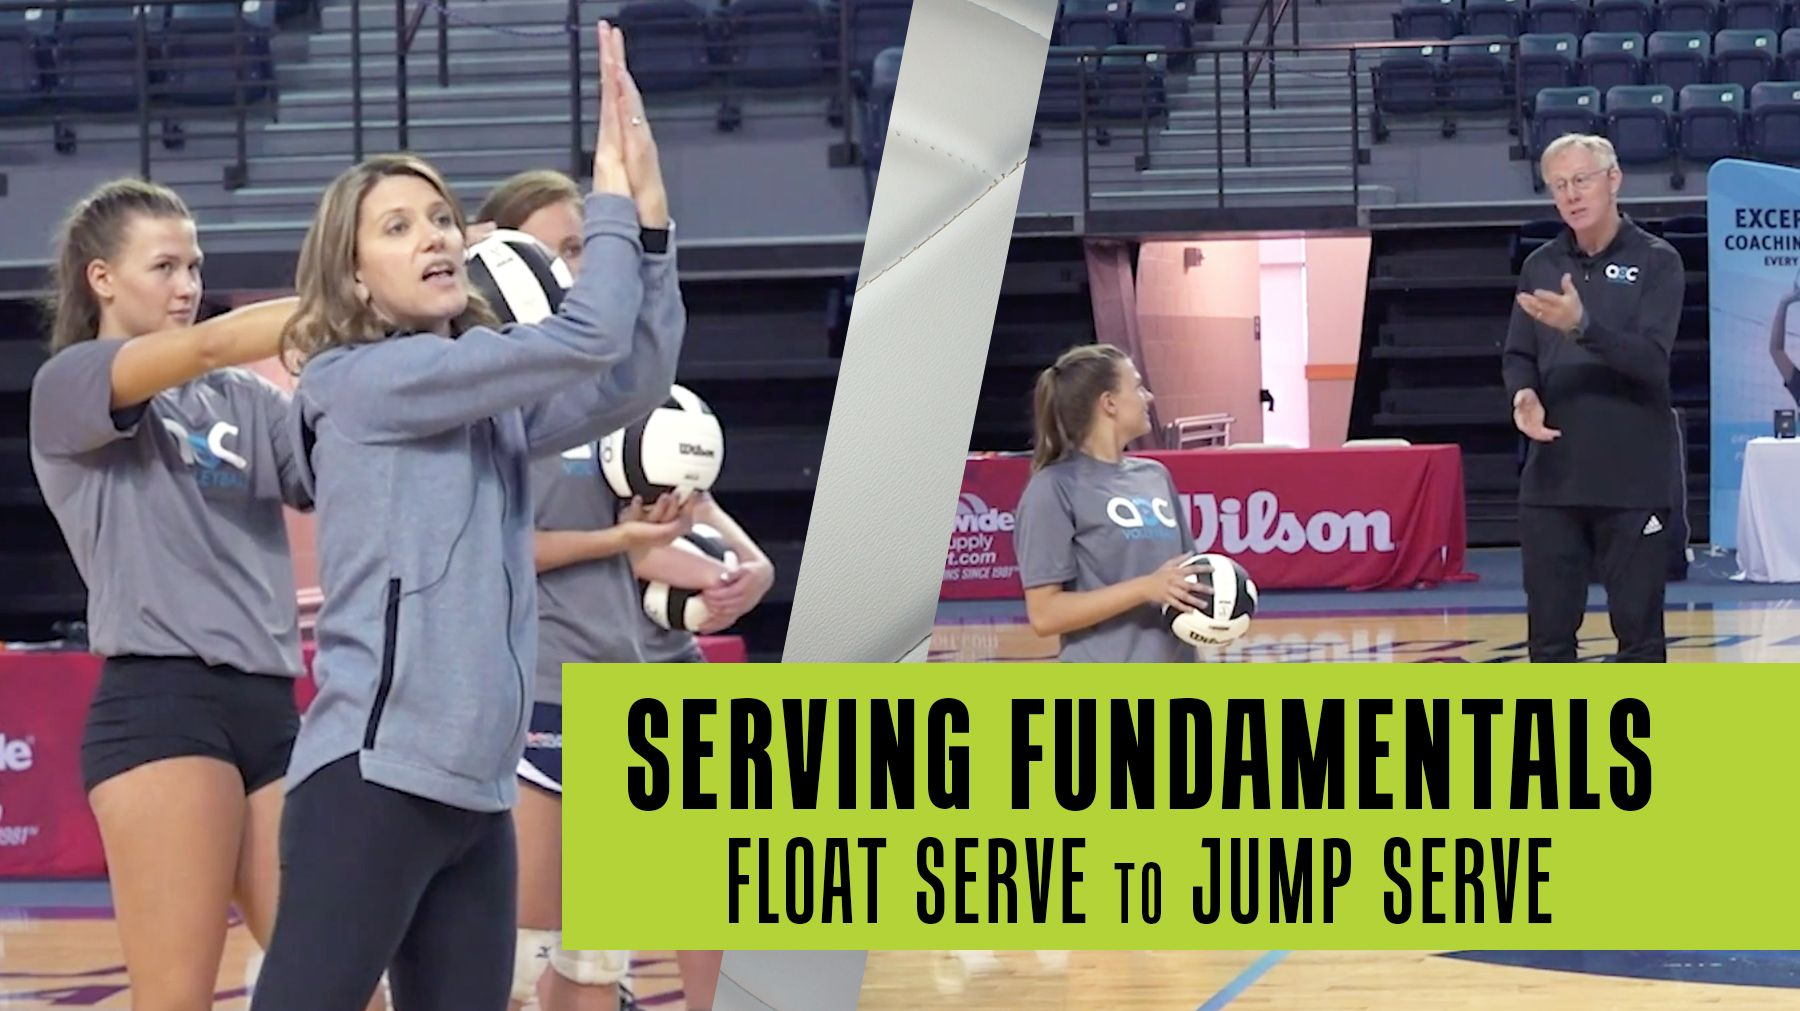 Serving Fundamentals Float Serve Coaching Volleyball Volleyball Training Volleyball Serve